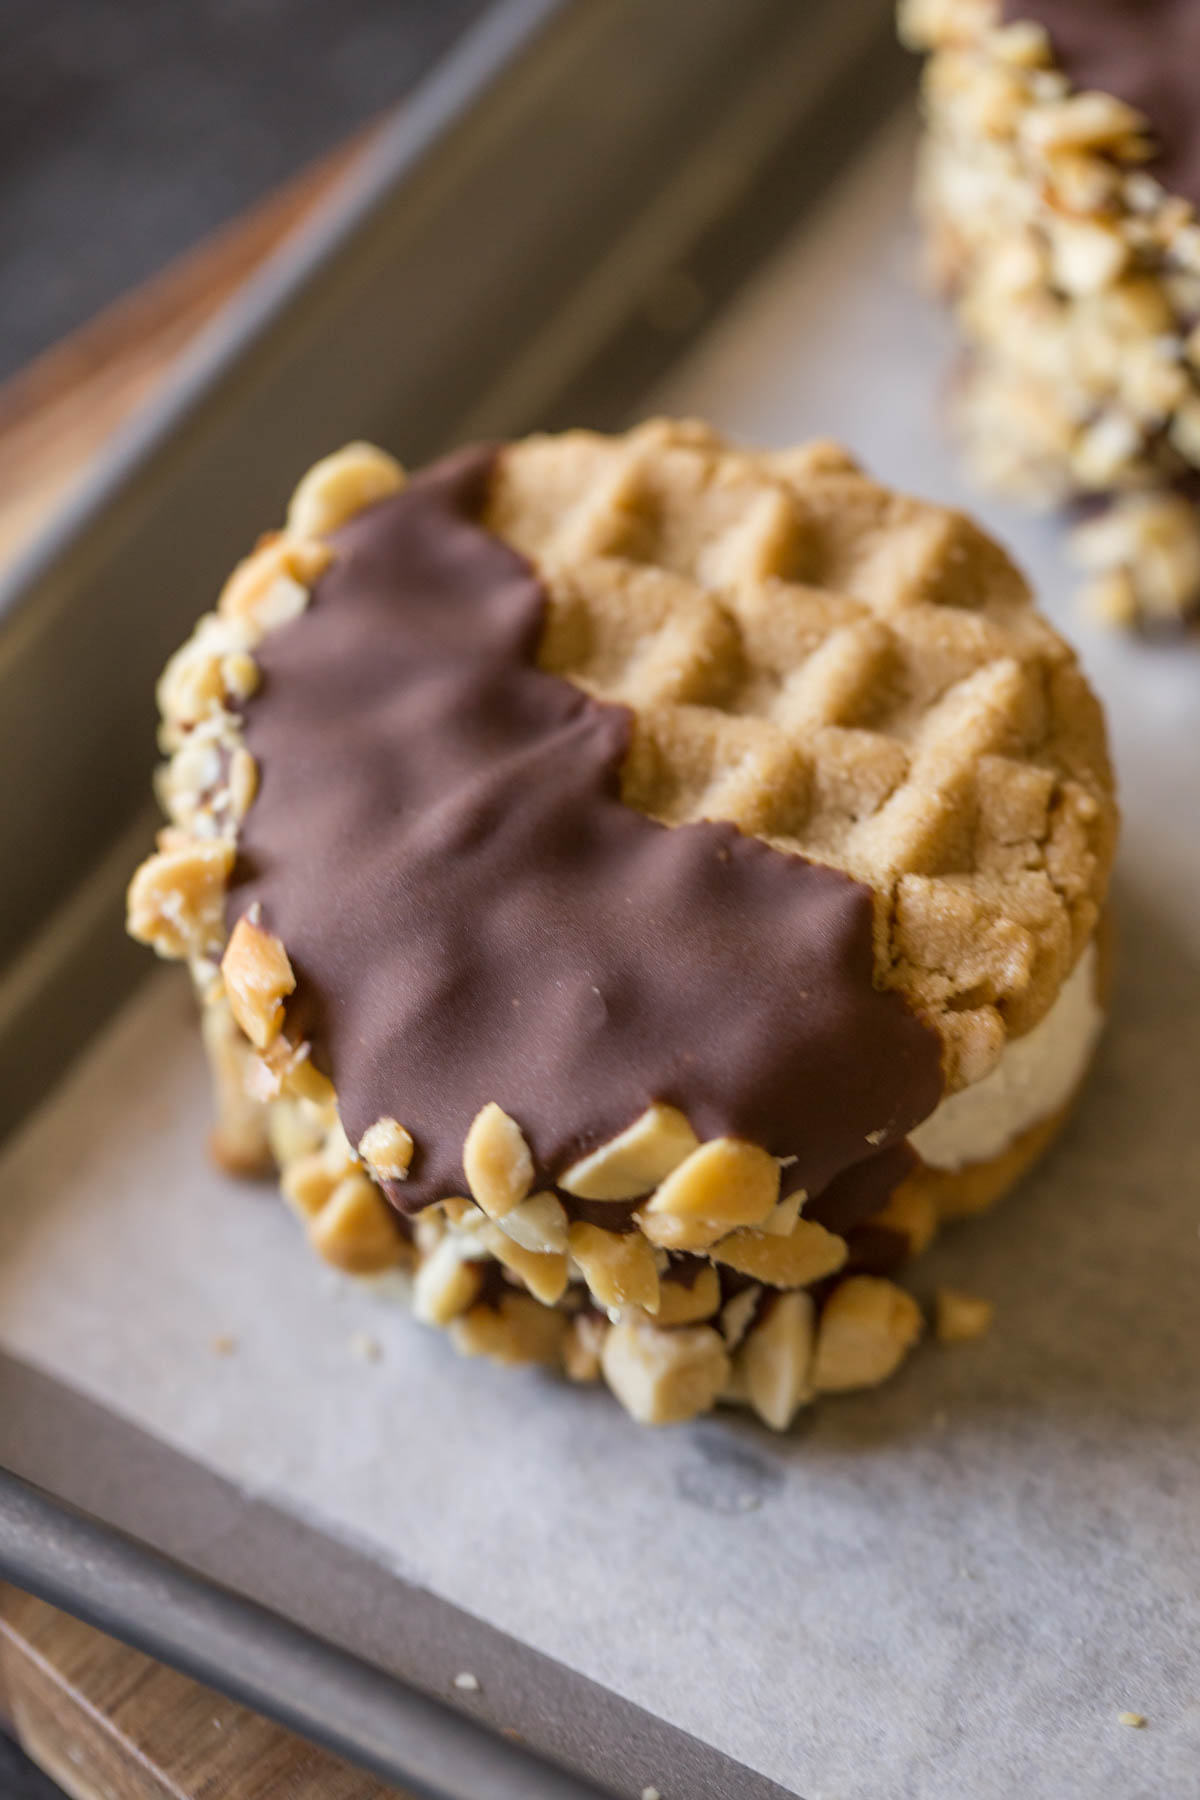 A Peanut Butter Cookie Ice Cream Sandwich on a parchment paper lined baking sheet.